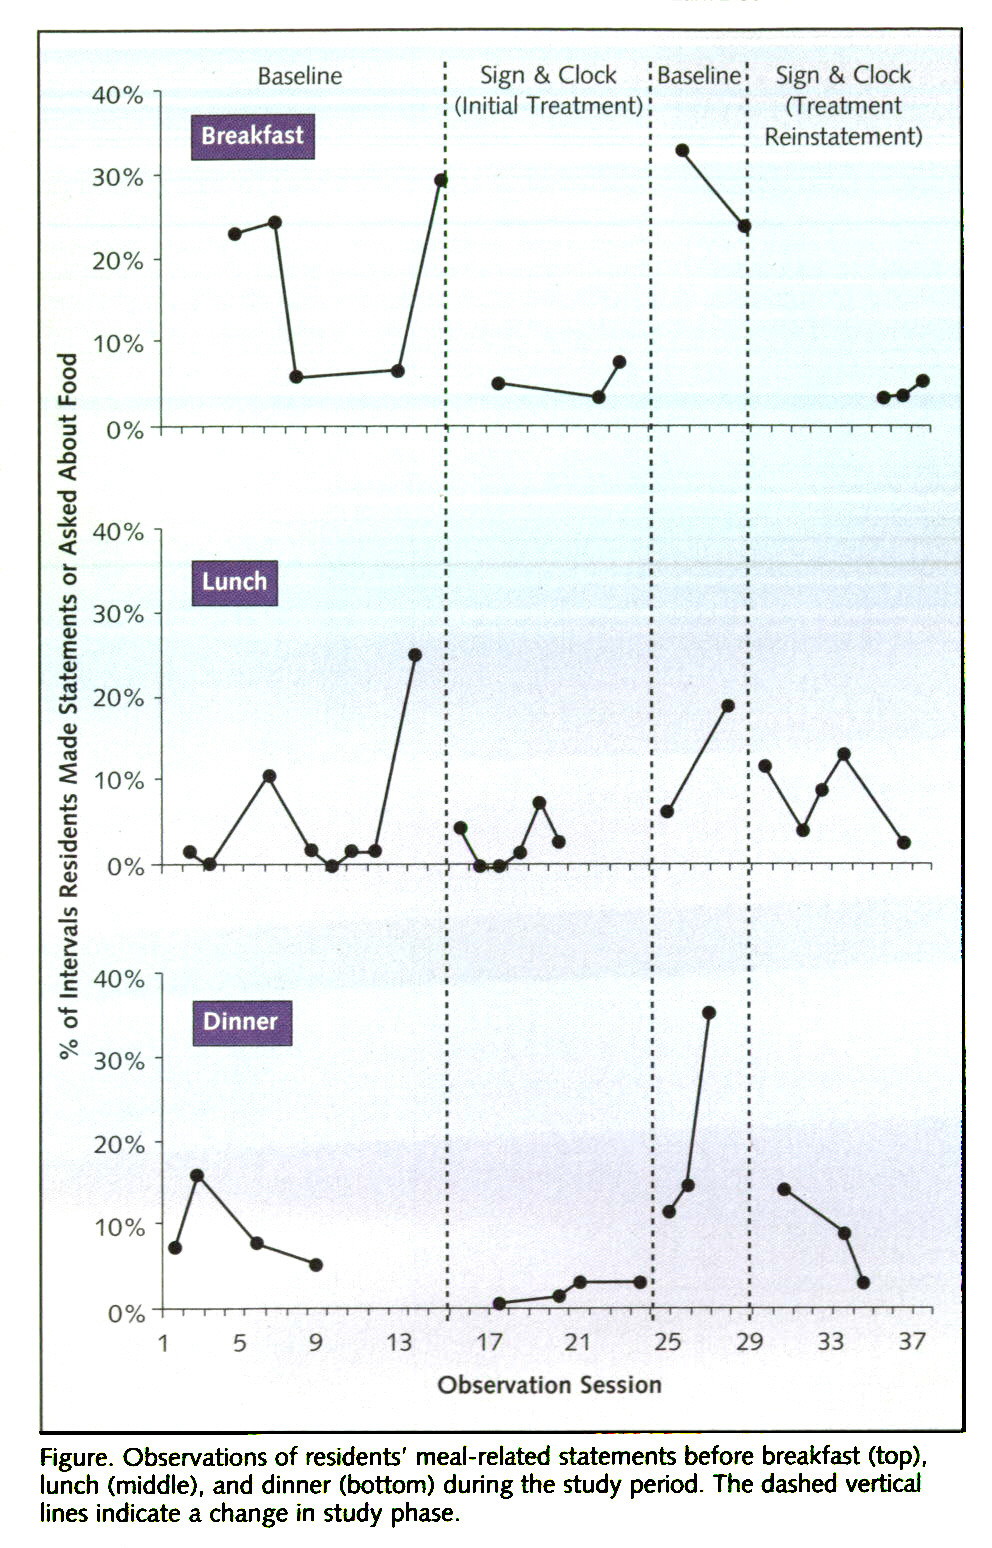 Figure. Observations of residents' meal-related statements before breakfast (top), lunch (middle), and dinner (bottom) during the study period. The dashed vertical lines indicate a change in study phase.